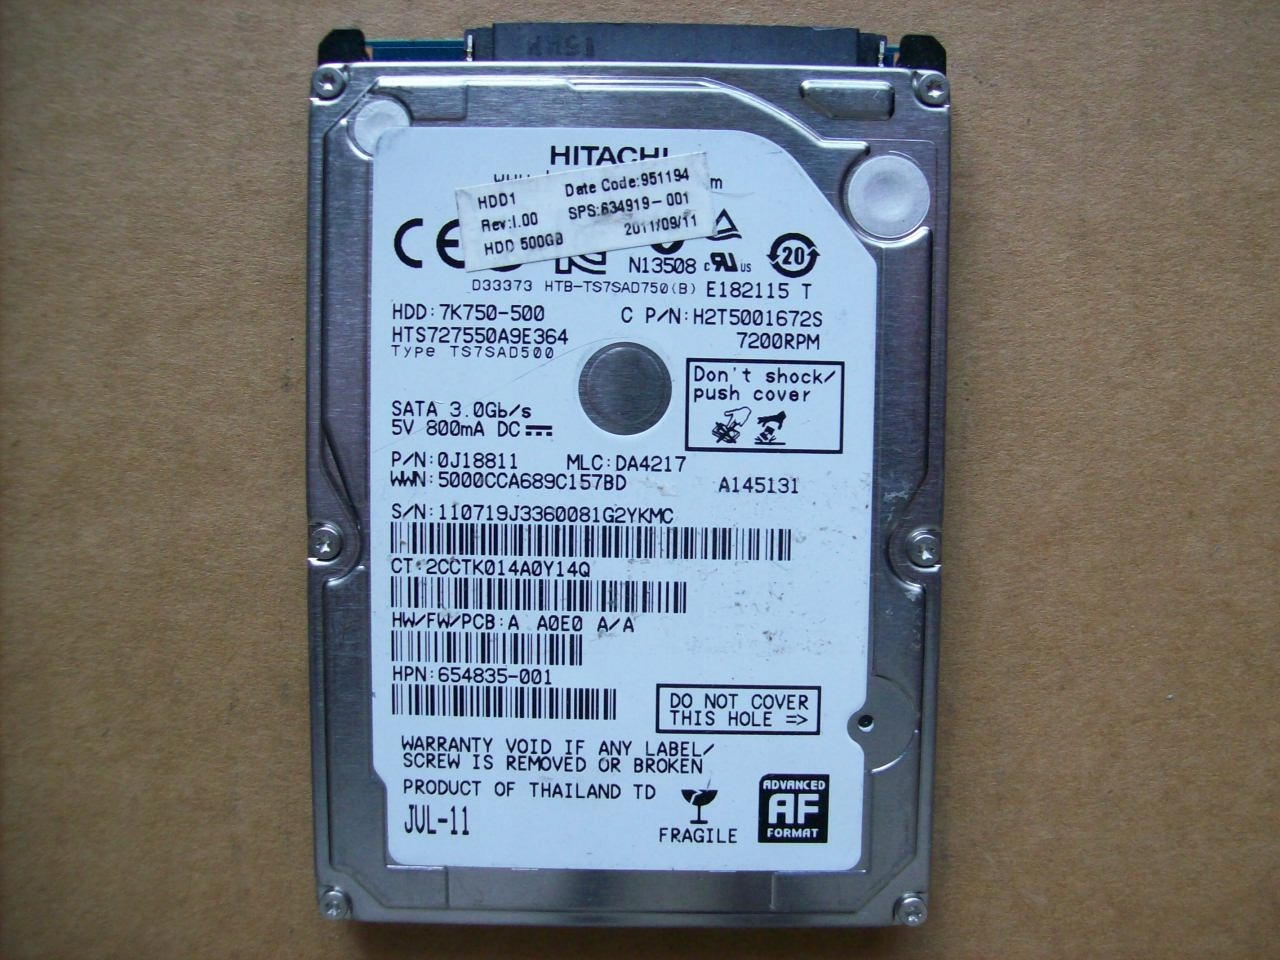 HITACHI 7K750-500 - HTS727550A9E364 - 500GB